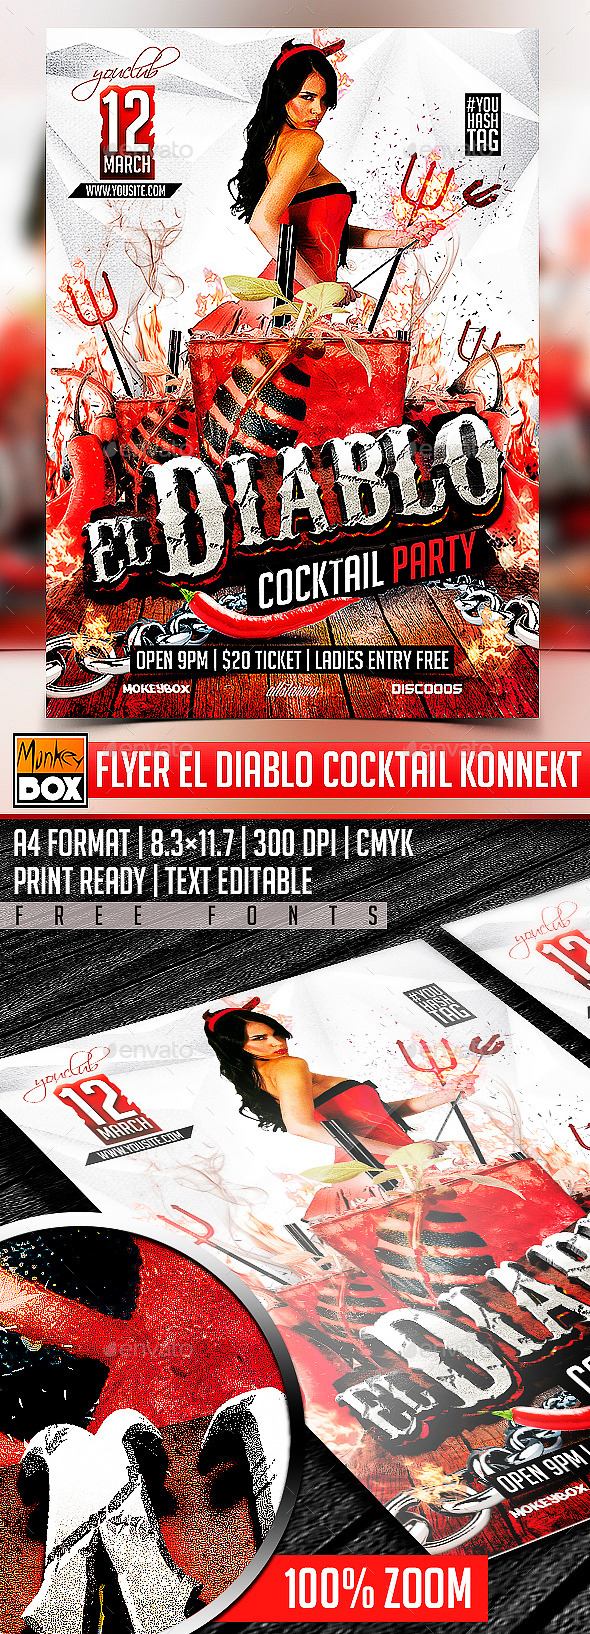 GraphicRiver Flyer El Diablo Cocktail Konnekt 10598879